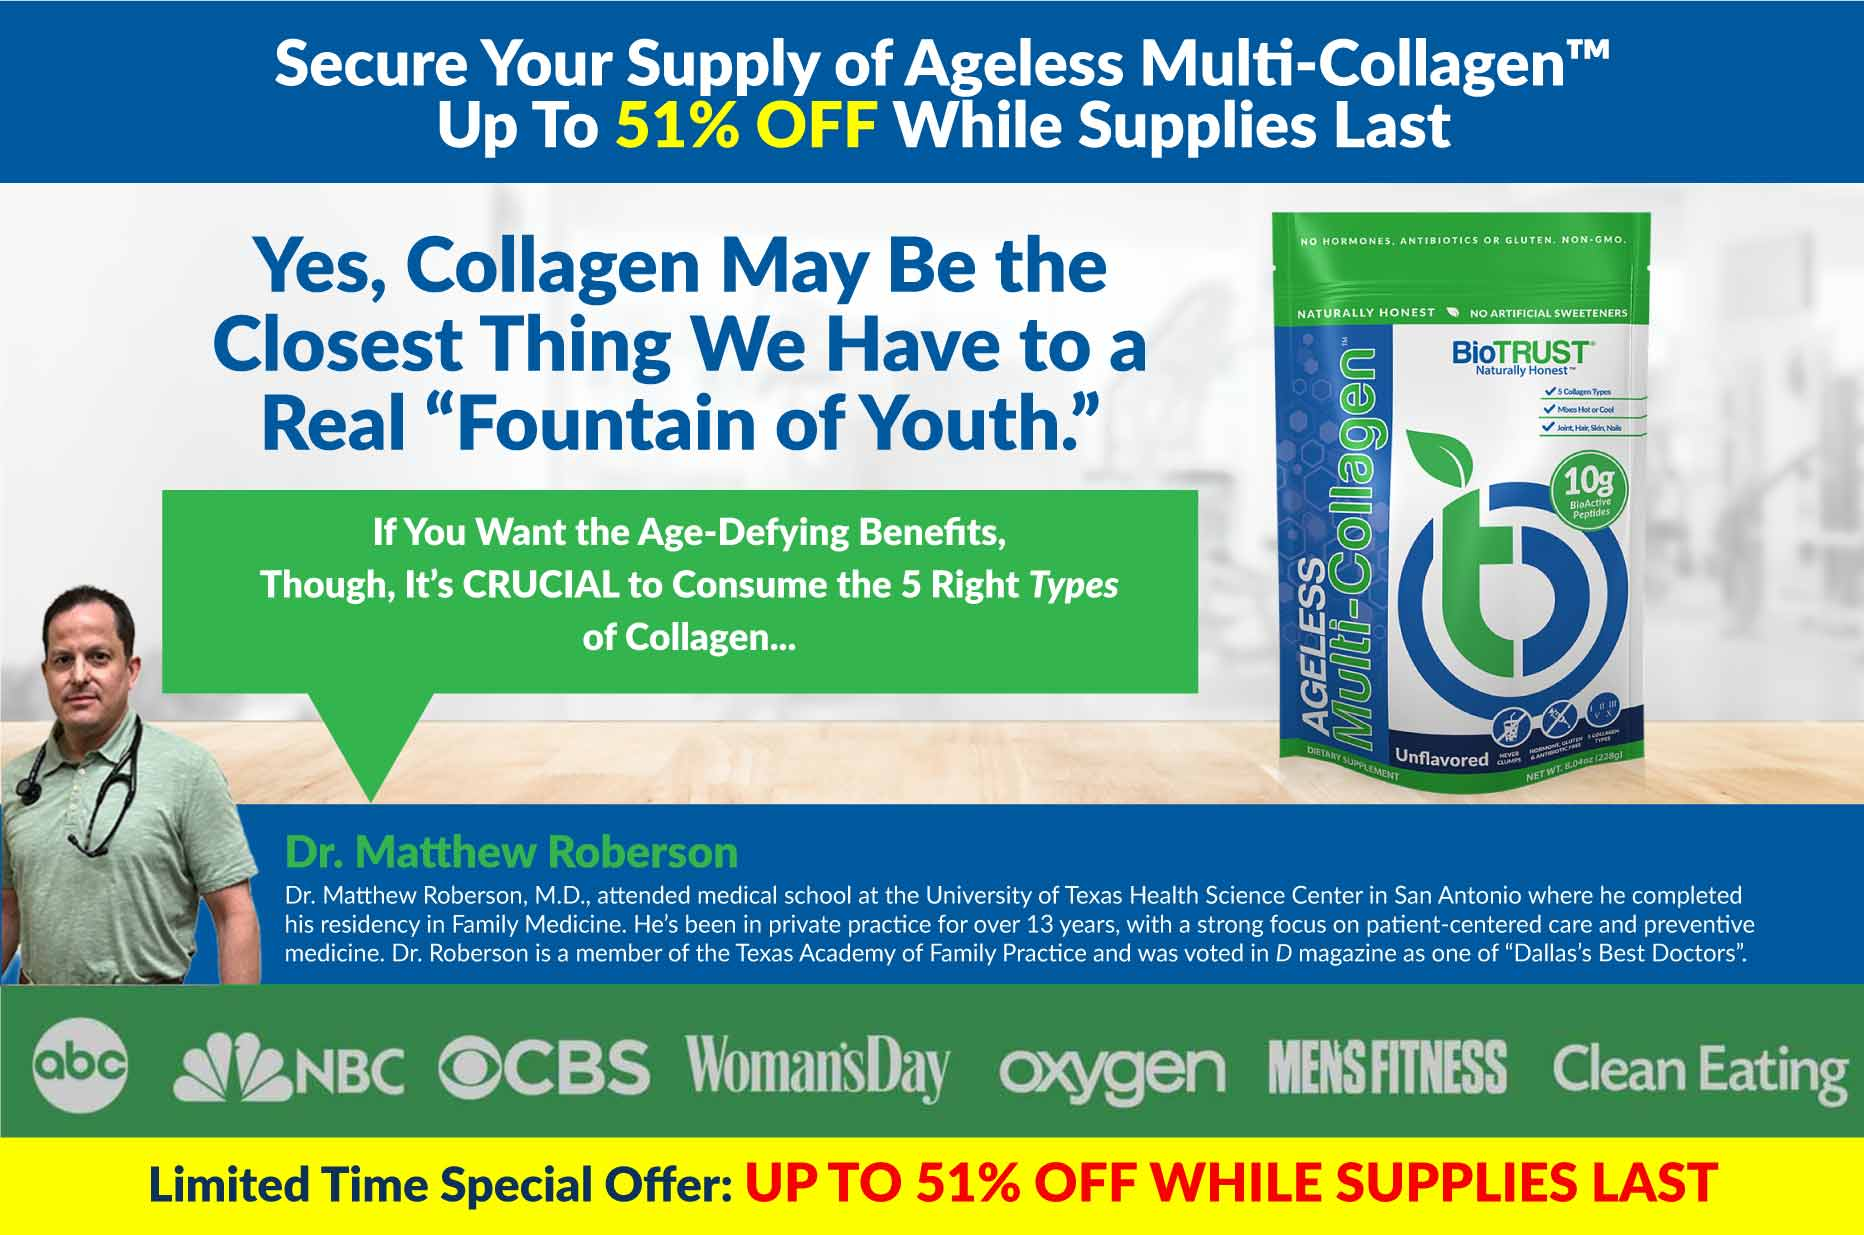 Ageless Multi-Collagen